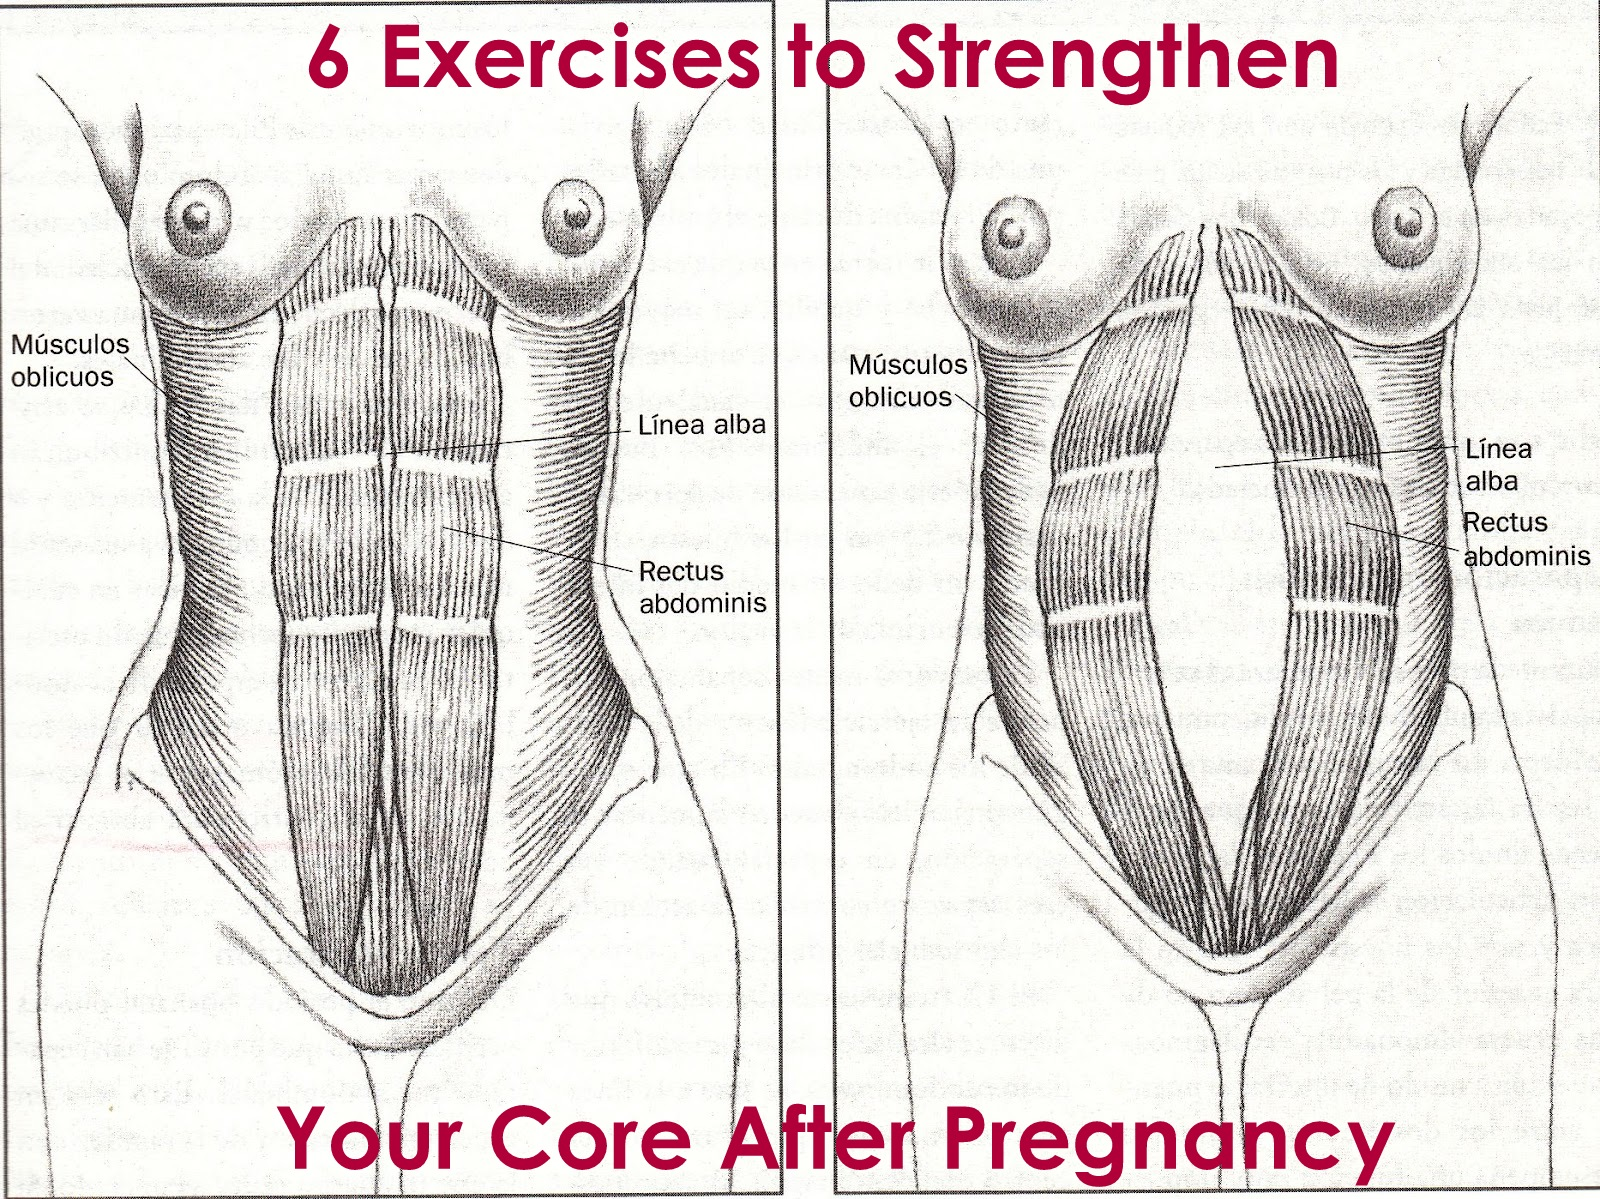 Forum on this topic: How to Strengthen Your Core, how-to-strengthen-your-core/